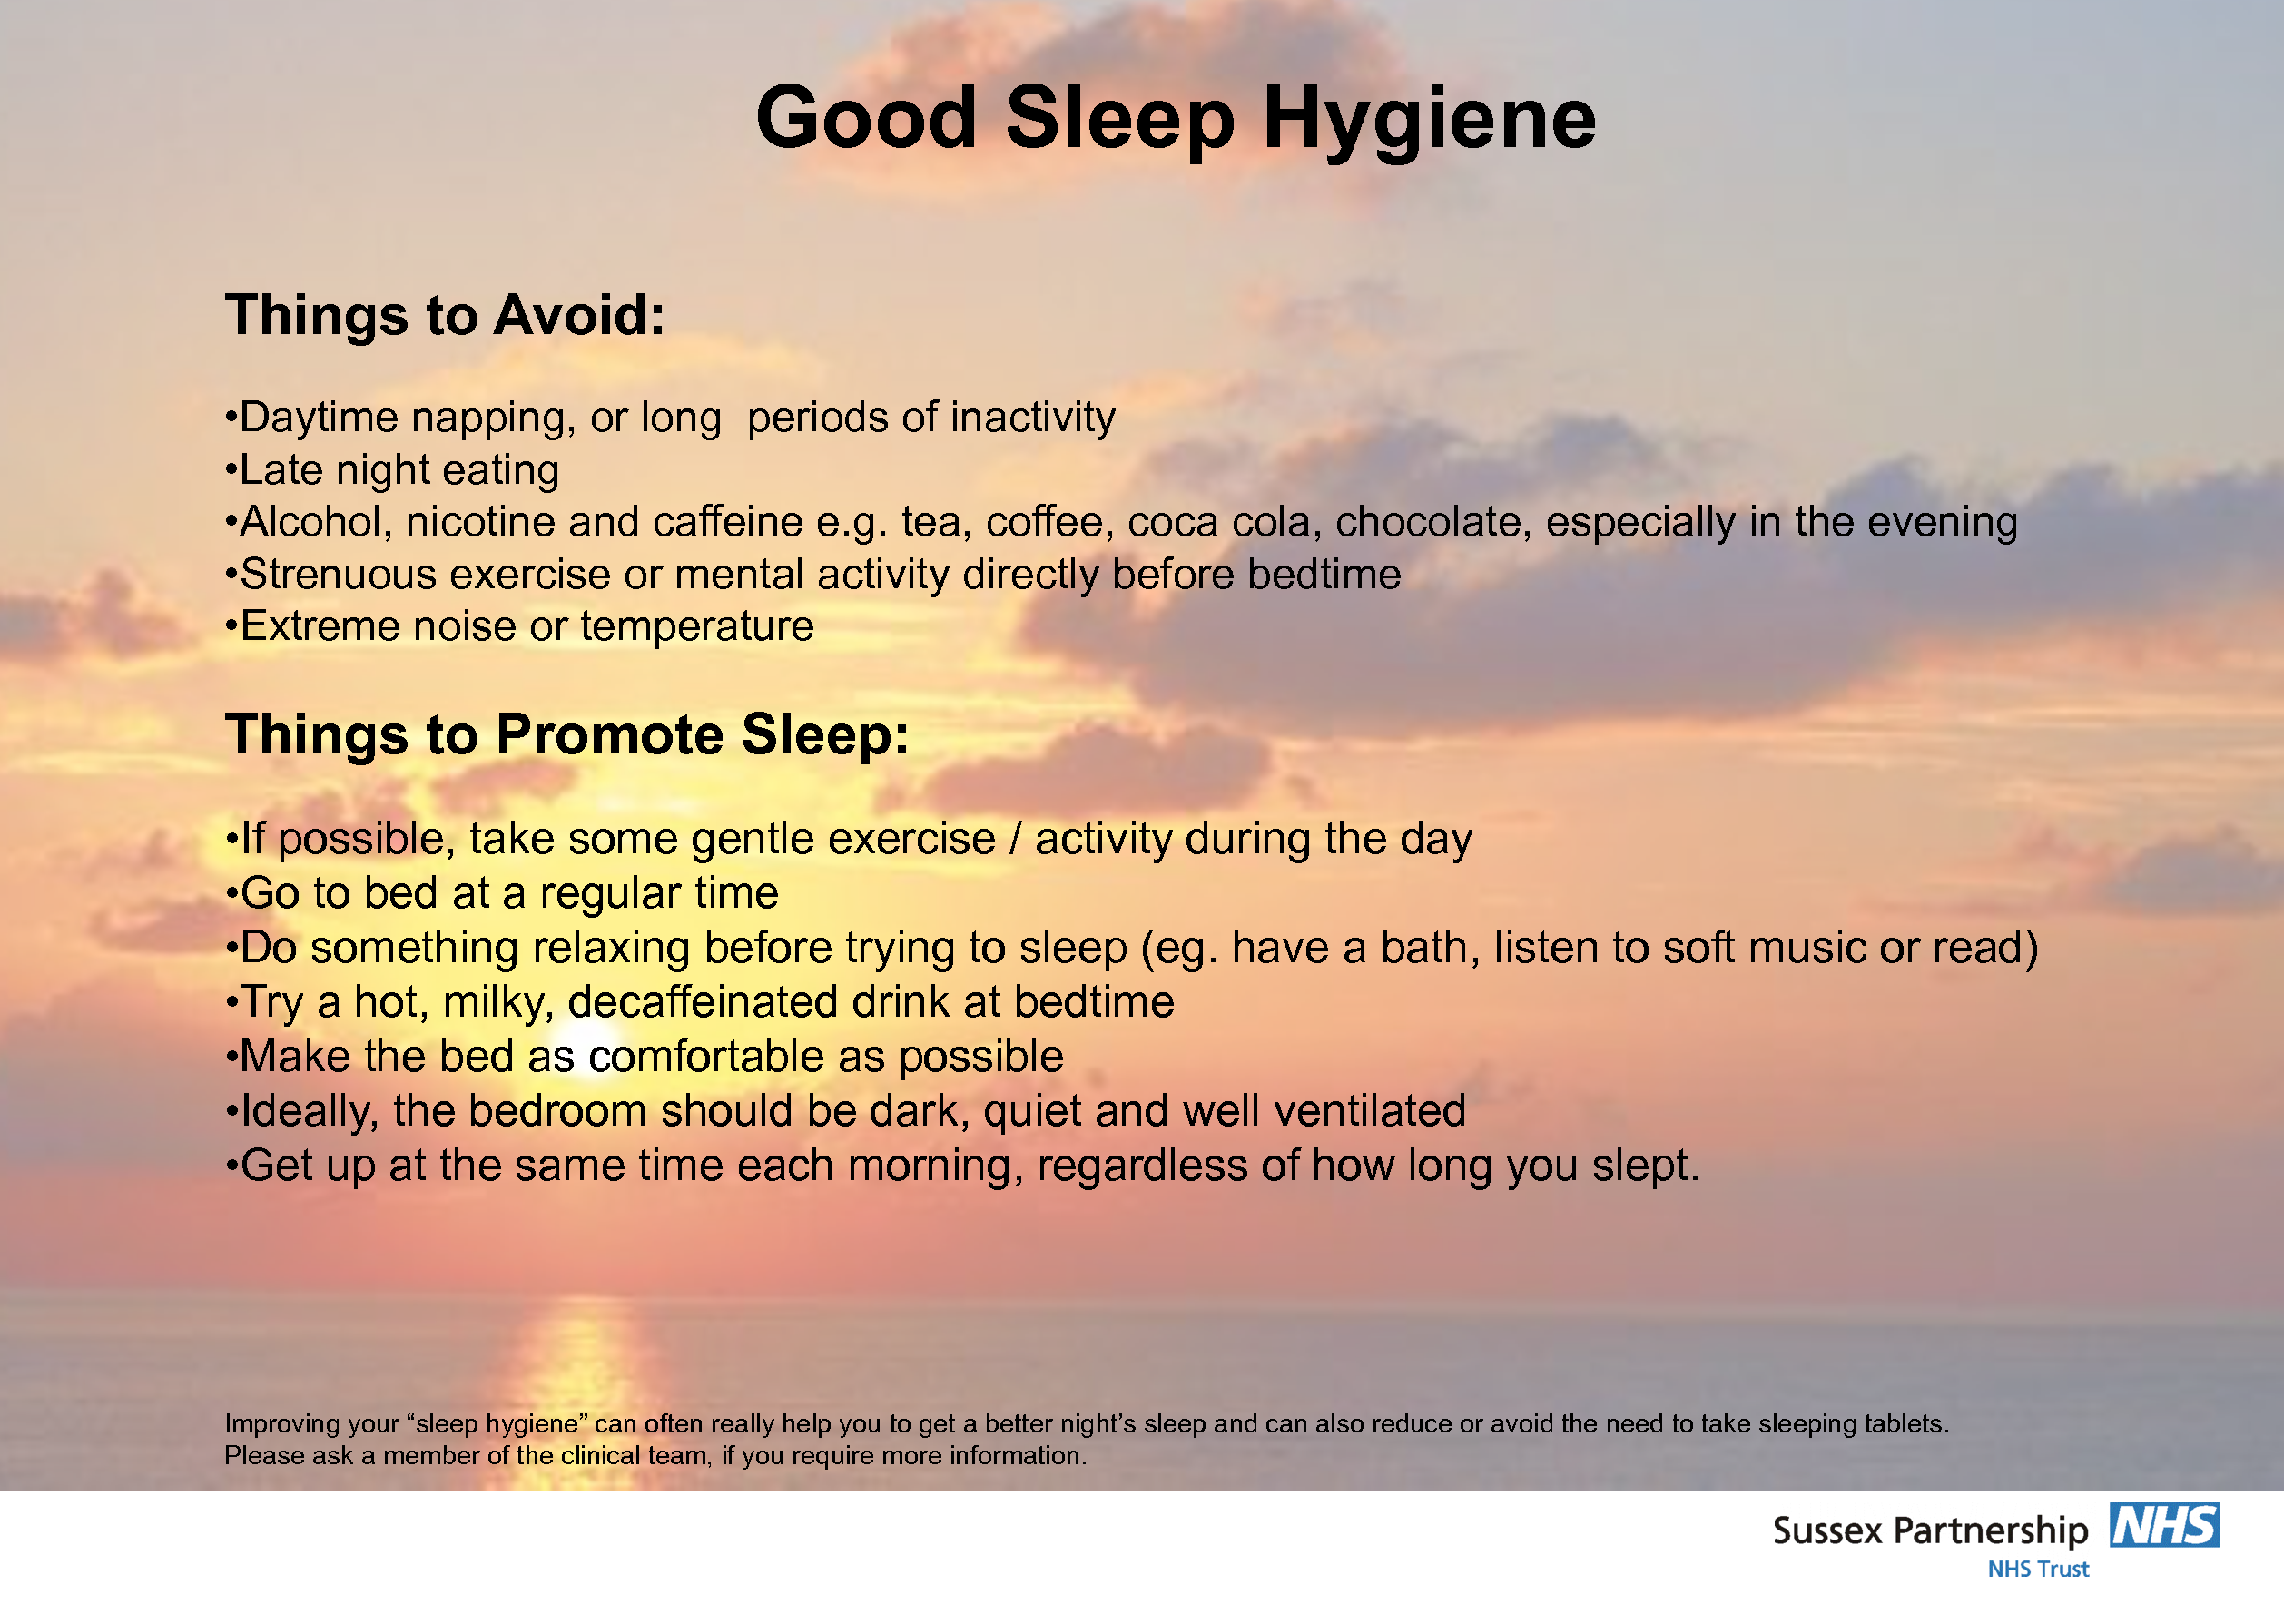 Free Printable Good Sleep Hygiene Good Sleep Hygiene Things To